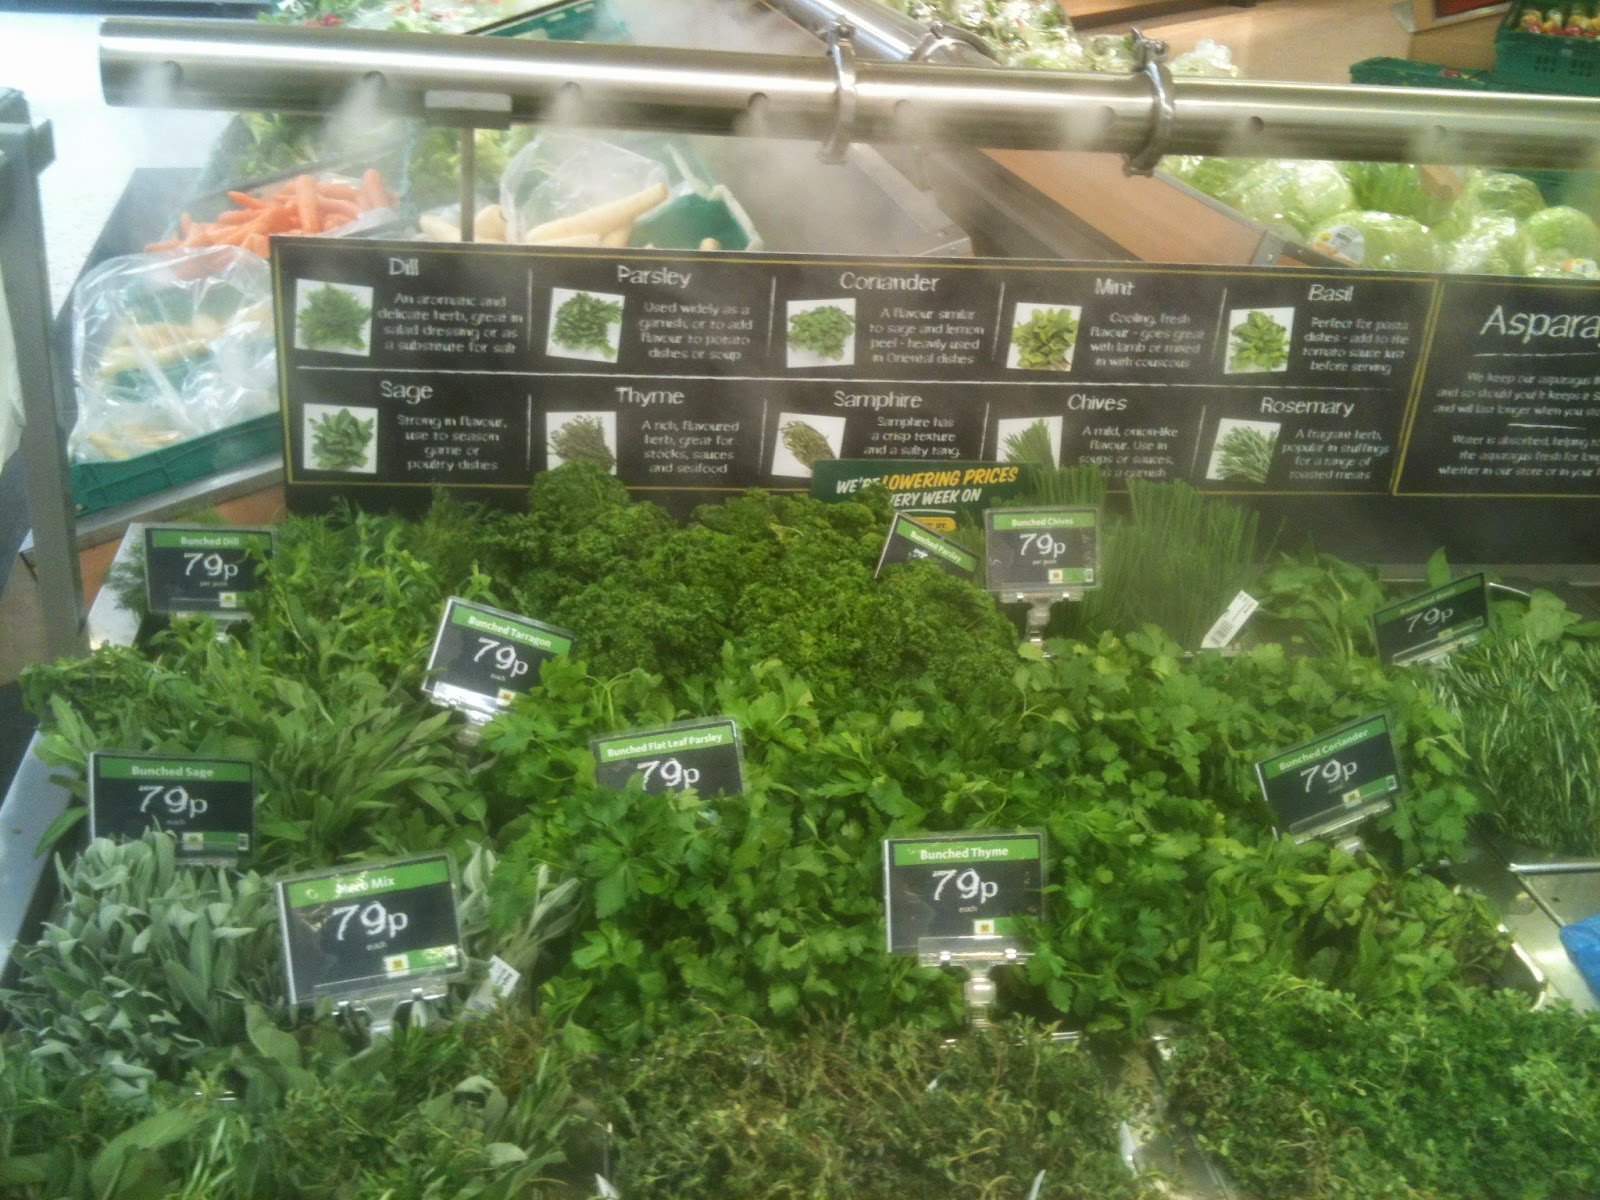 Herbs under the cold steam spray at Morrisons